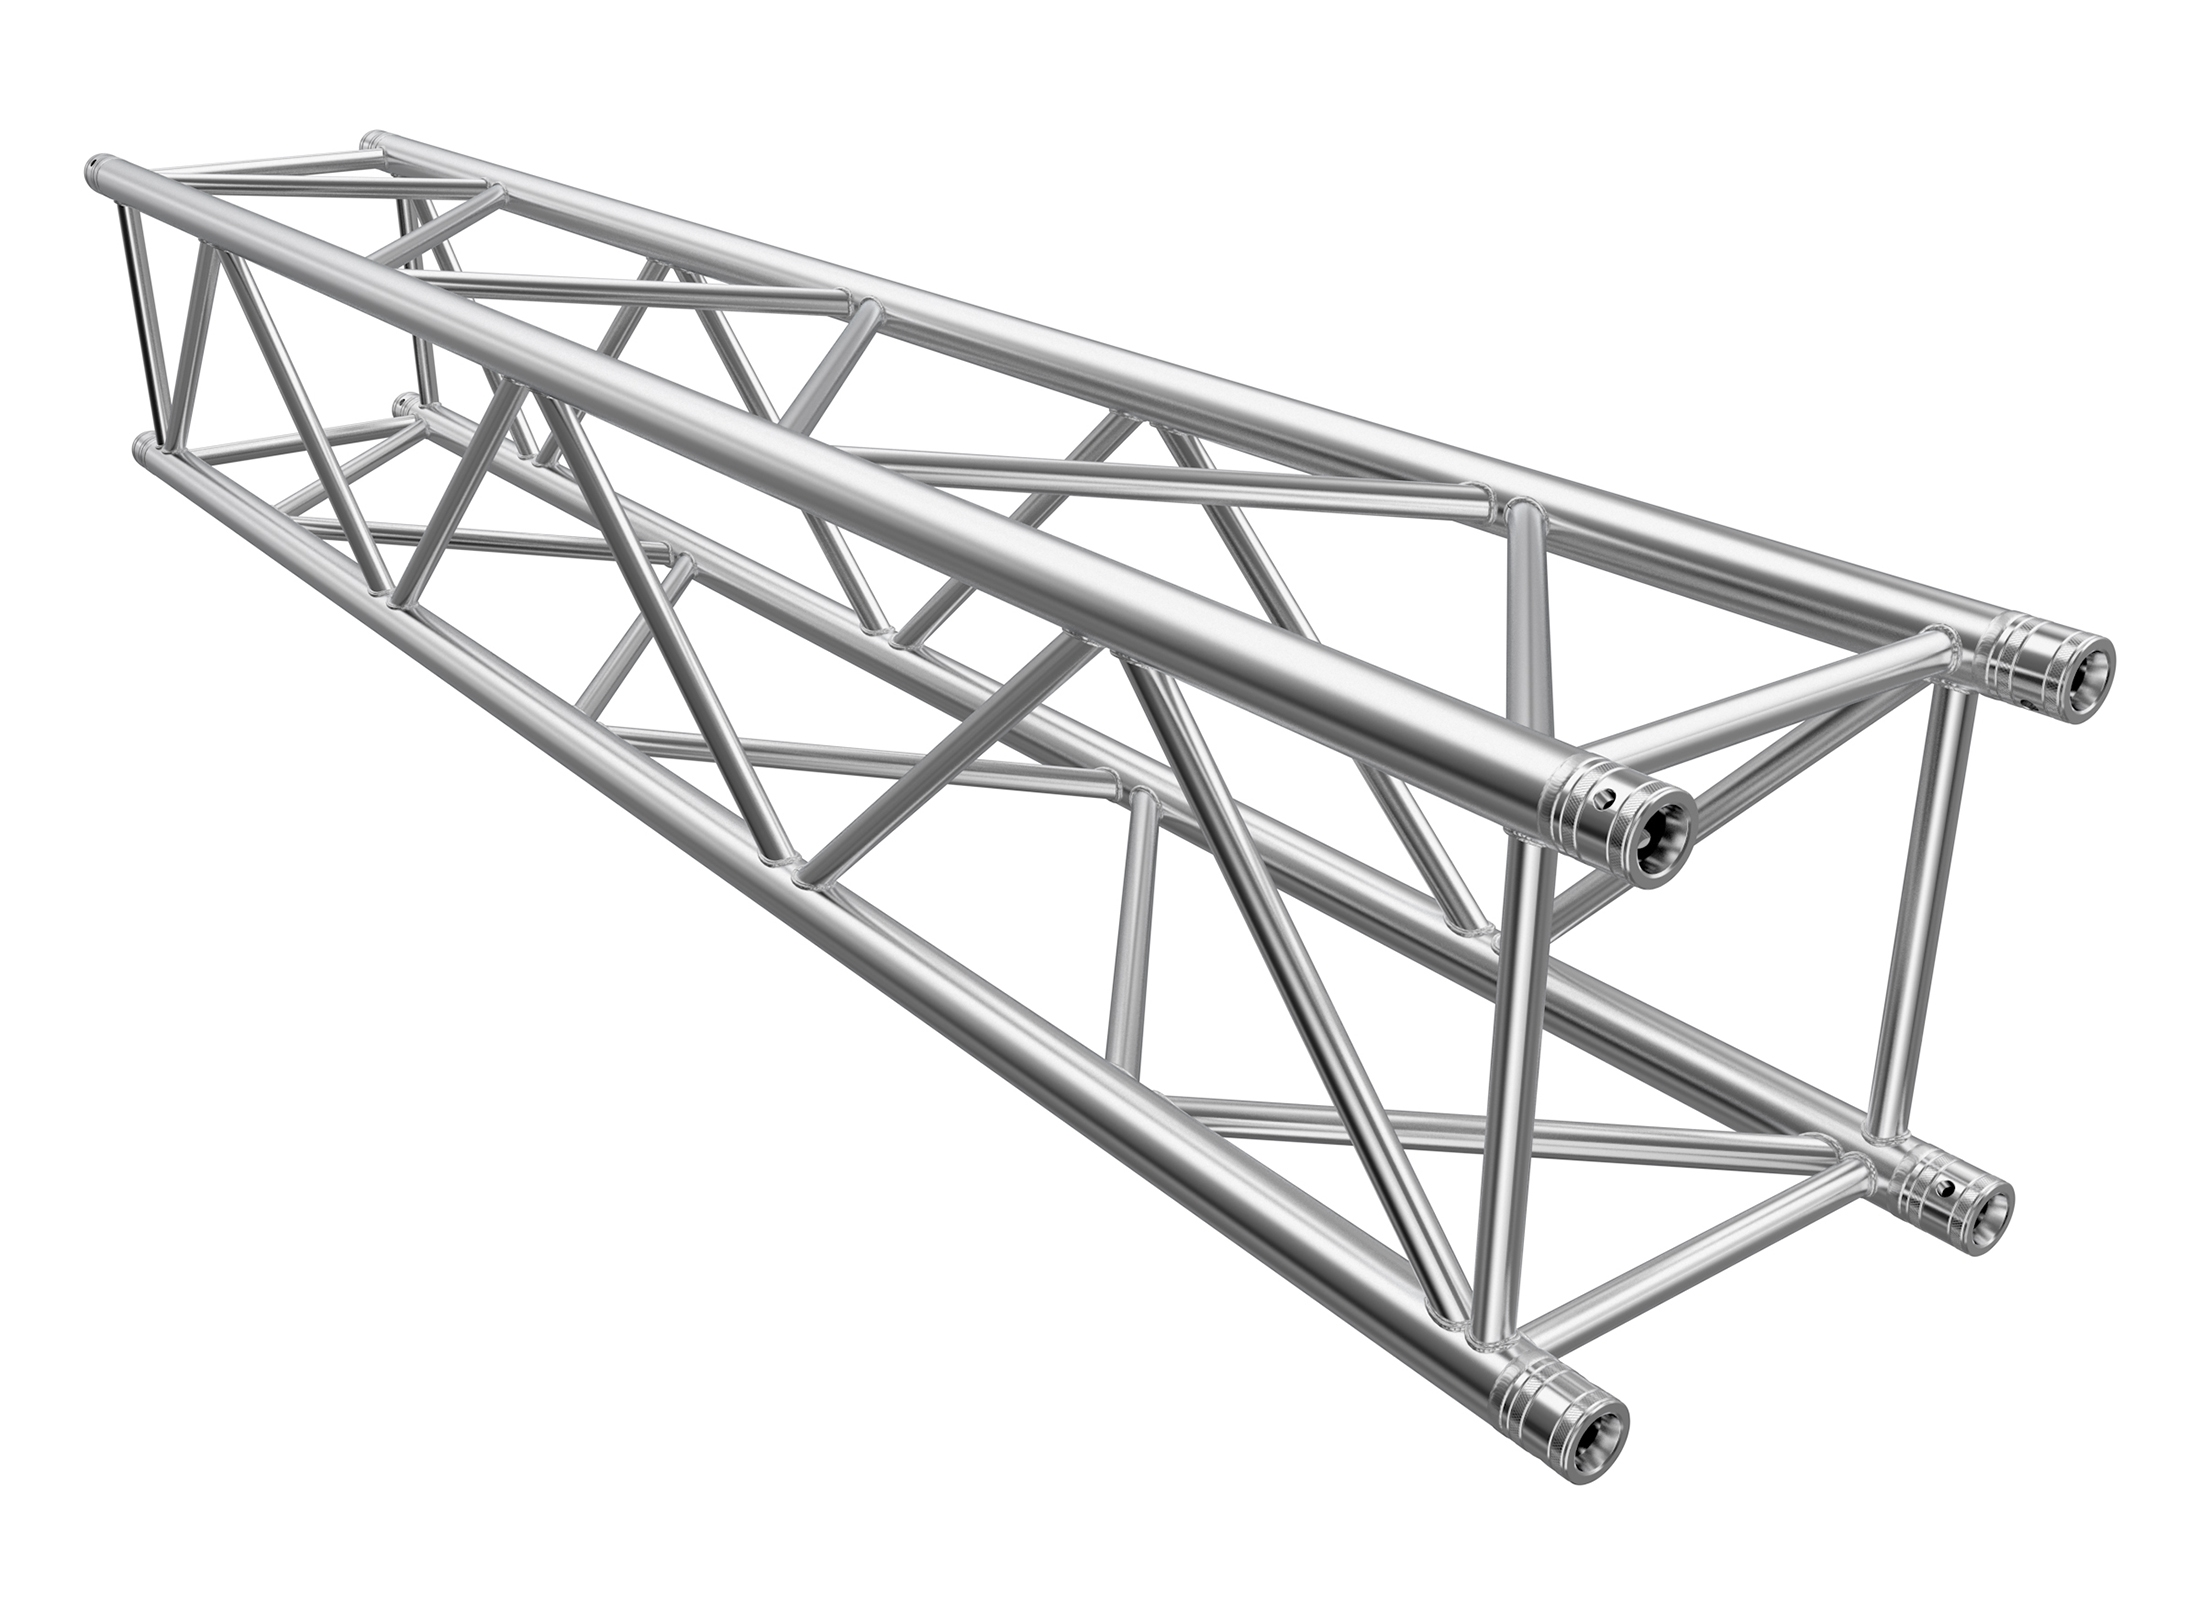 Global Truss F44 Truss 2.5m Online At Low Prices At Huss Light & Sound